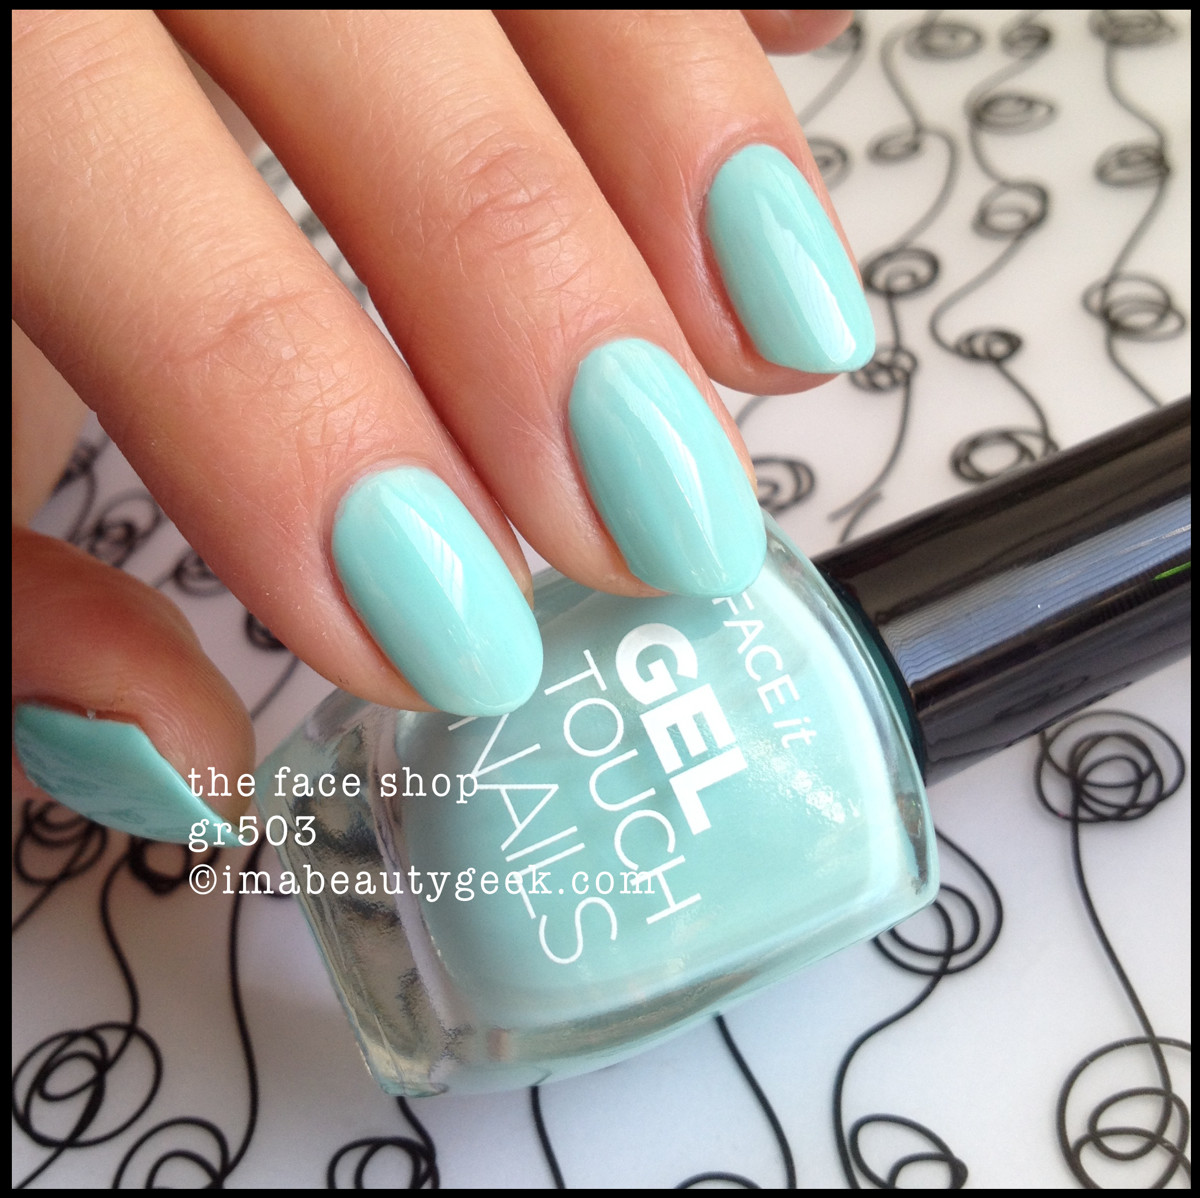 The Face Shop Face It Gel Touch Nails gr503